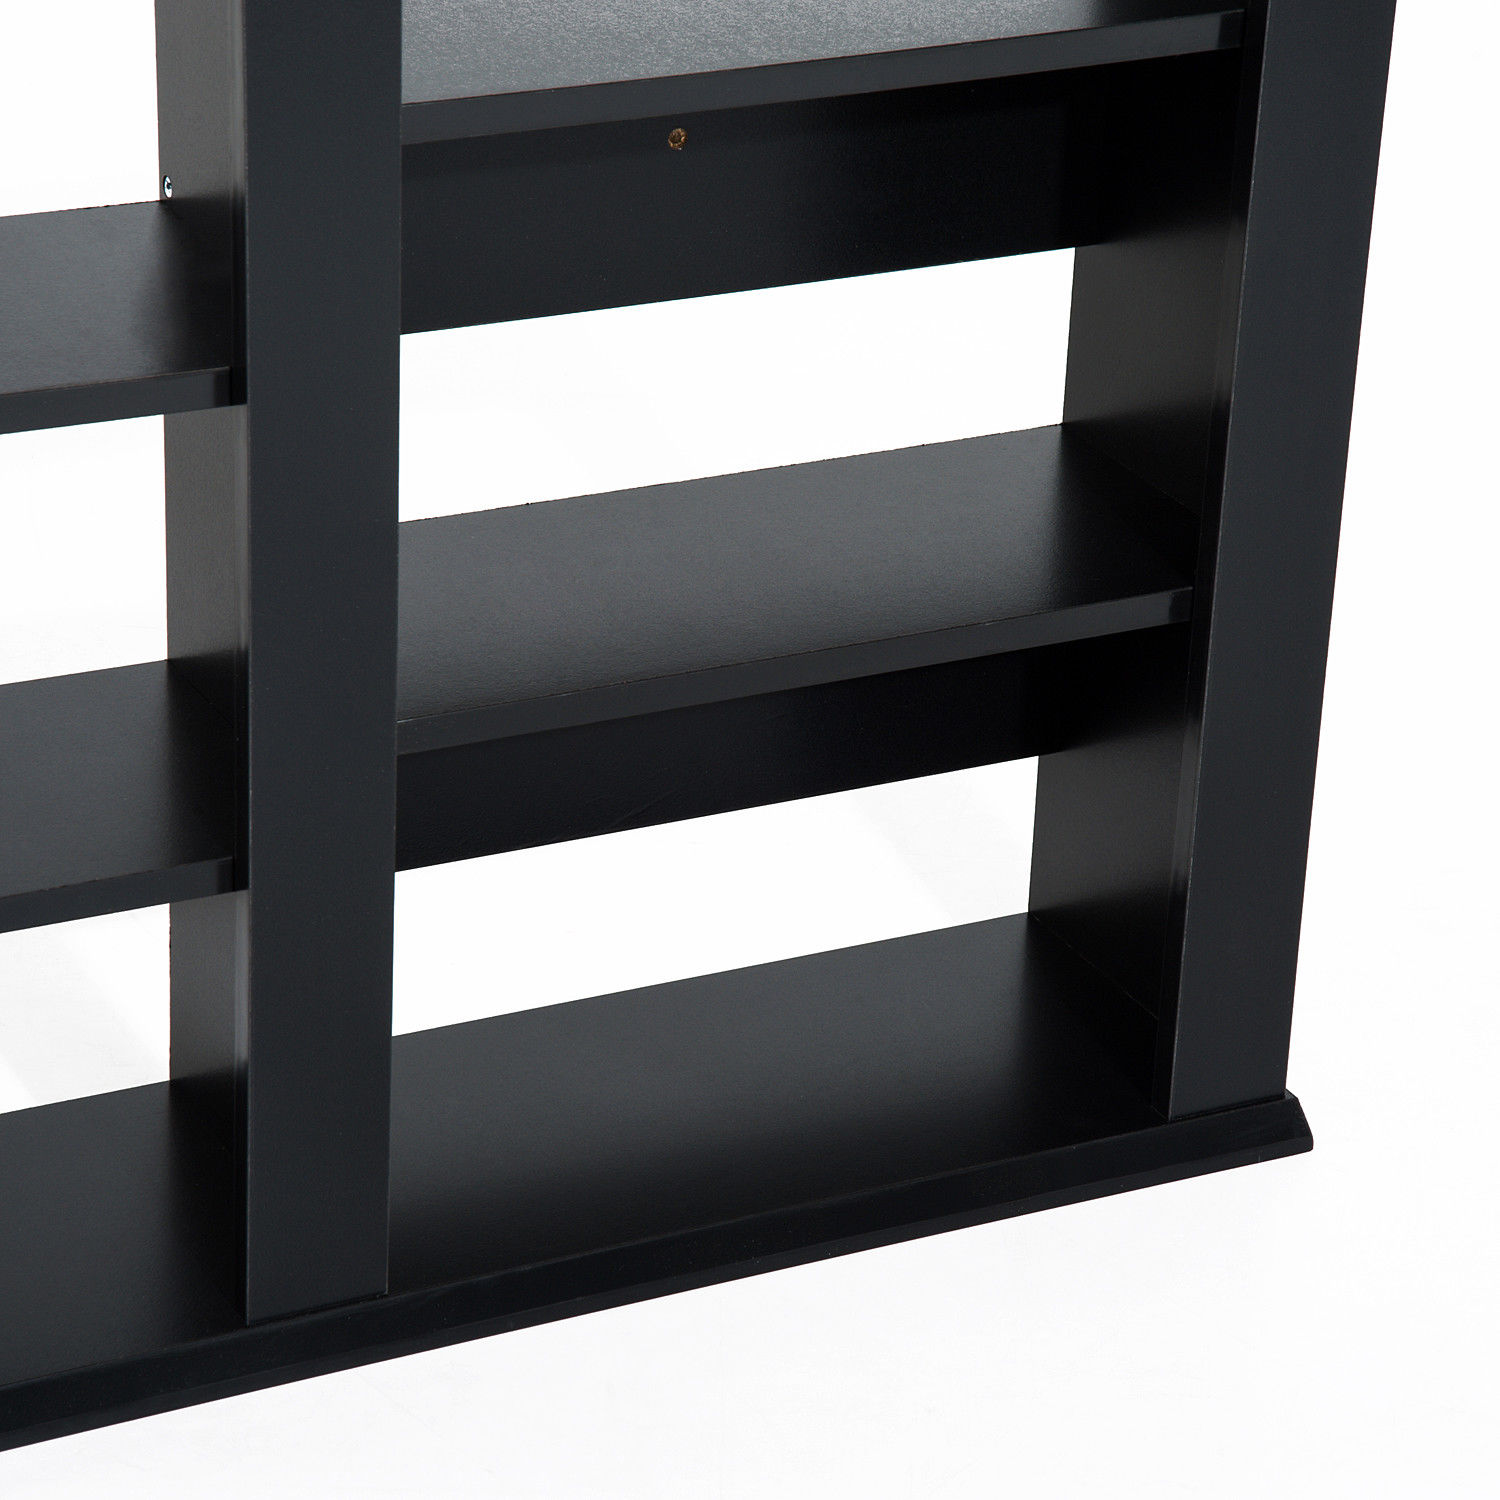 Wall-Mounted-Floating-CD-Book-Storage-Shelves-Triple-Rack-Organizer